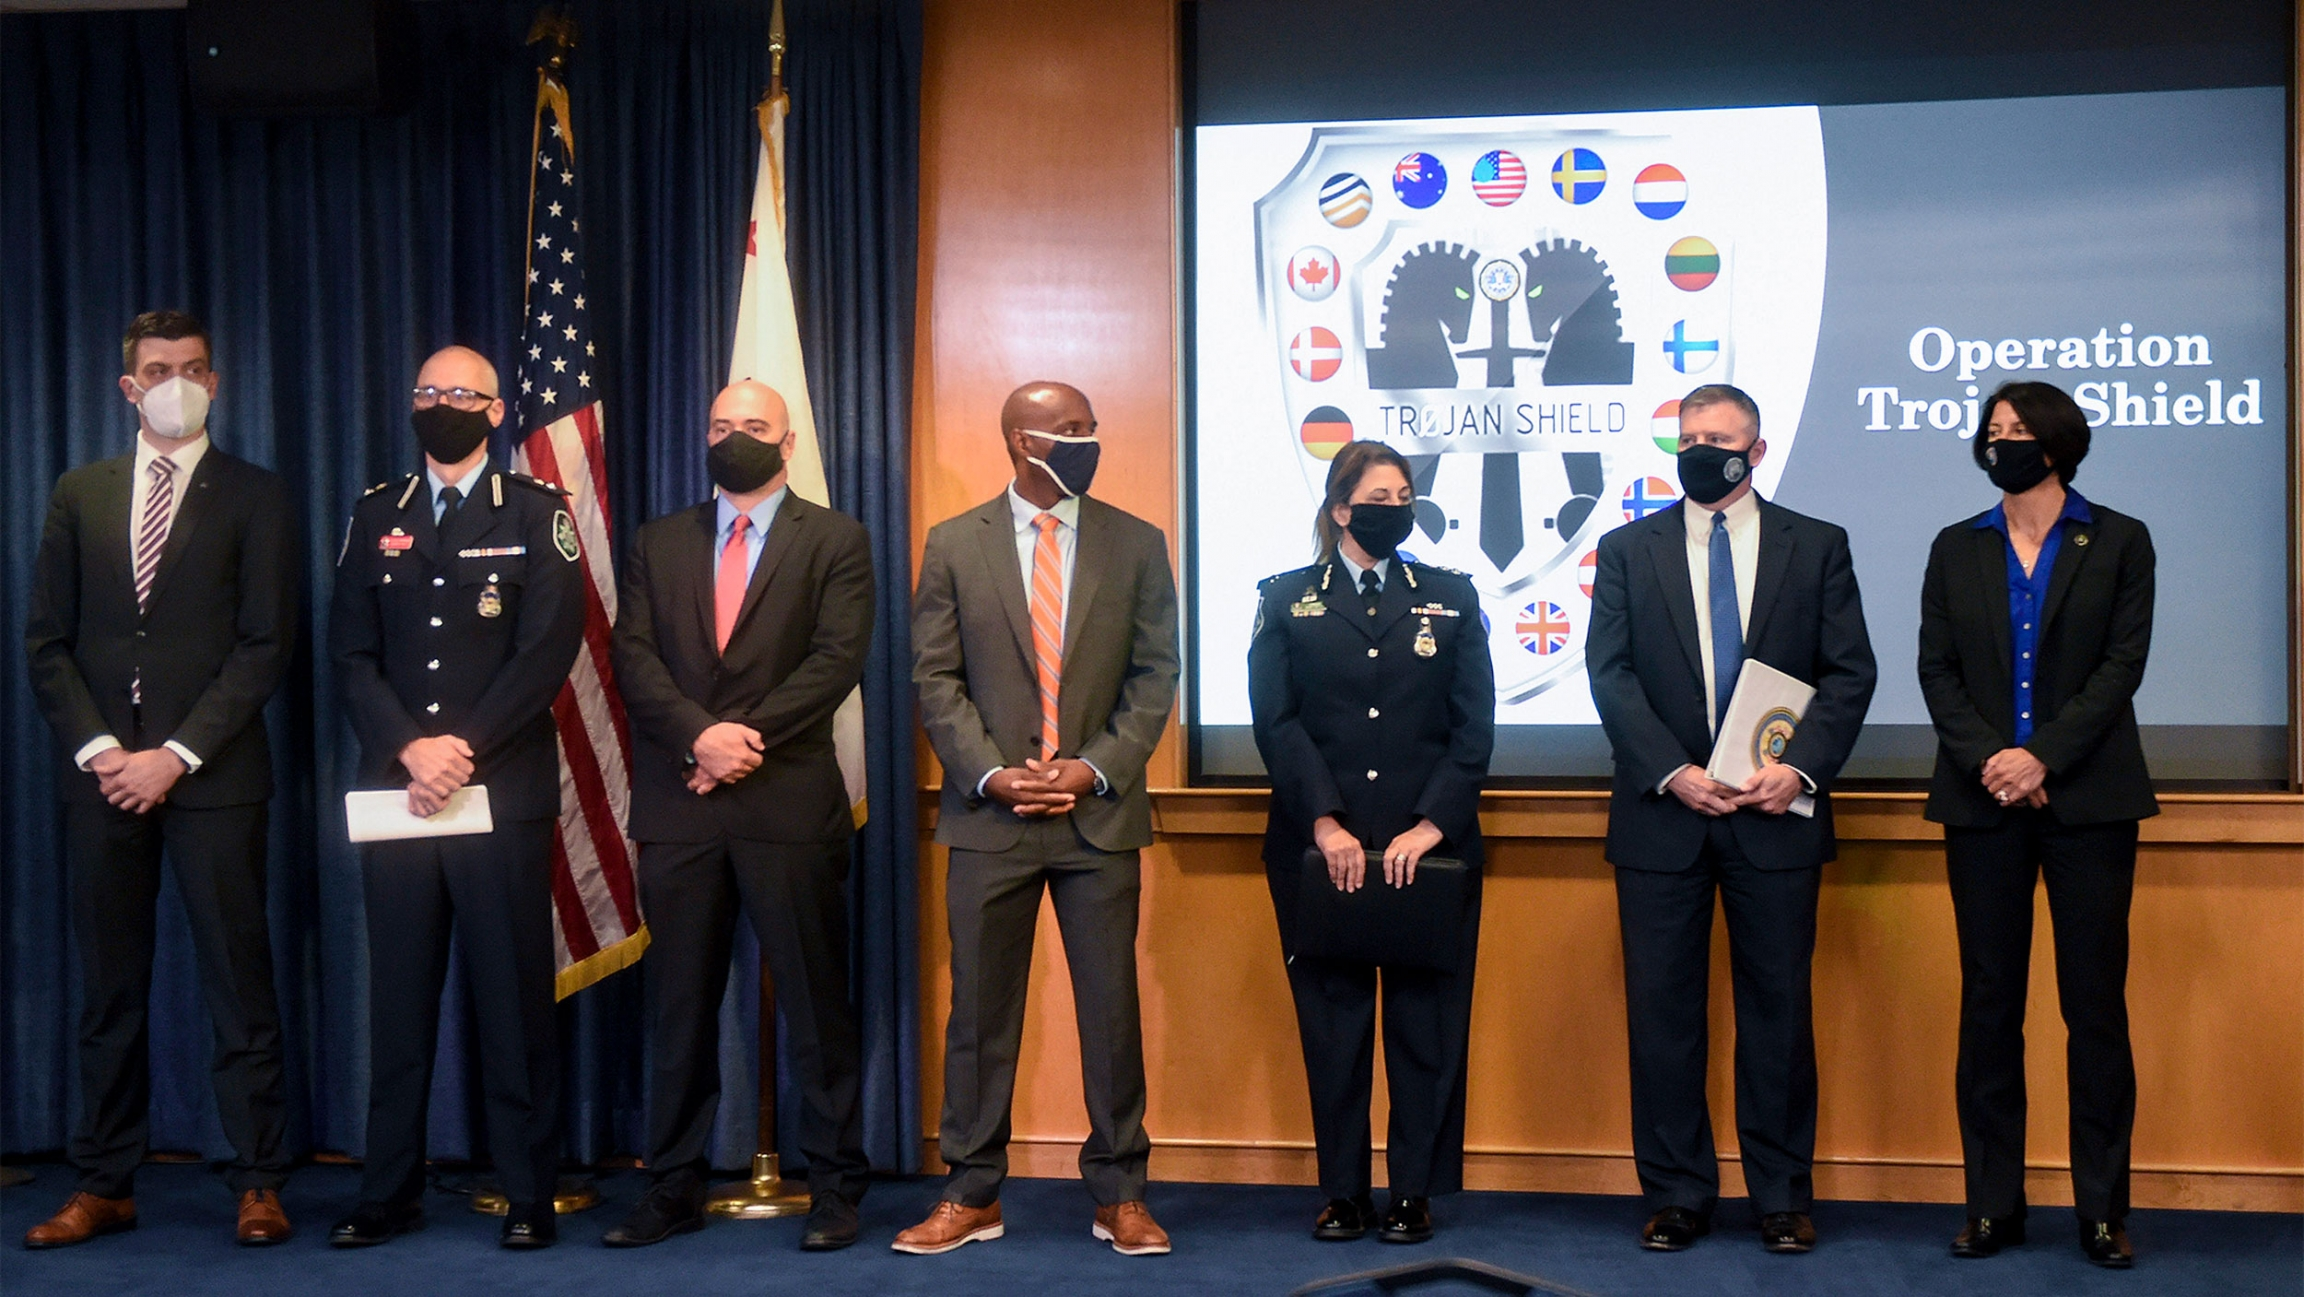 Law enforcement officials stand in front of an Operation Trojan Shield logo at a news conference